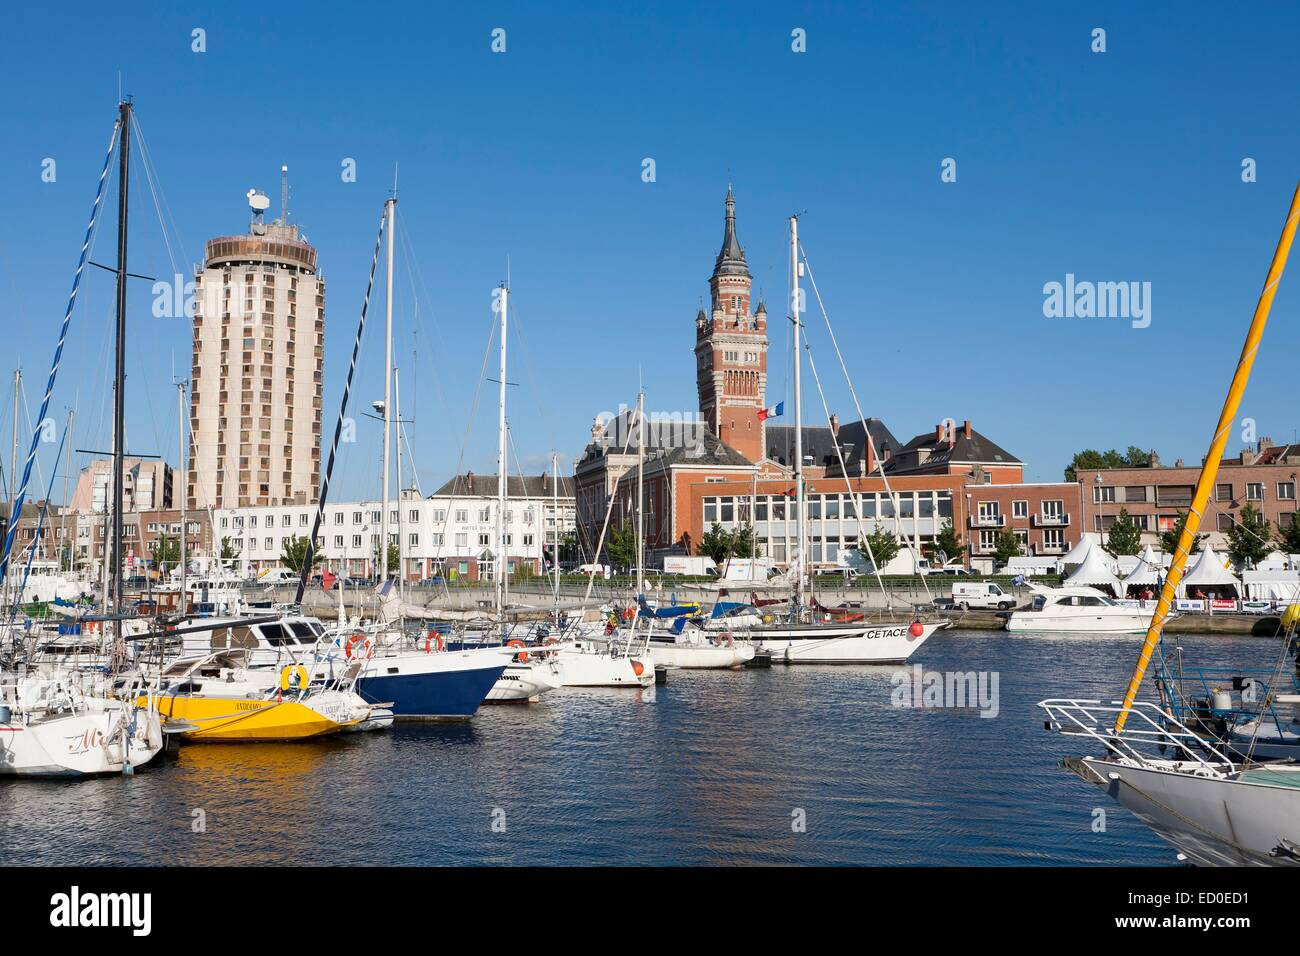 France, Nord, Dunkirk, boats in the marina and city hall belfry listed as World Heritage by UNESCO Stock Photo